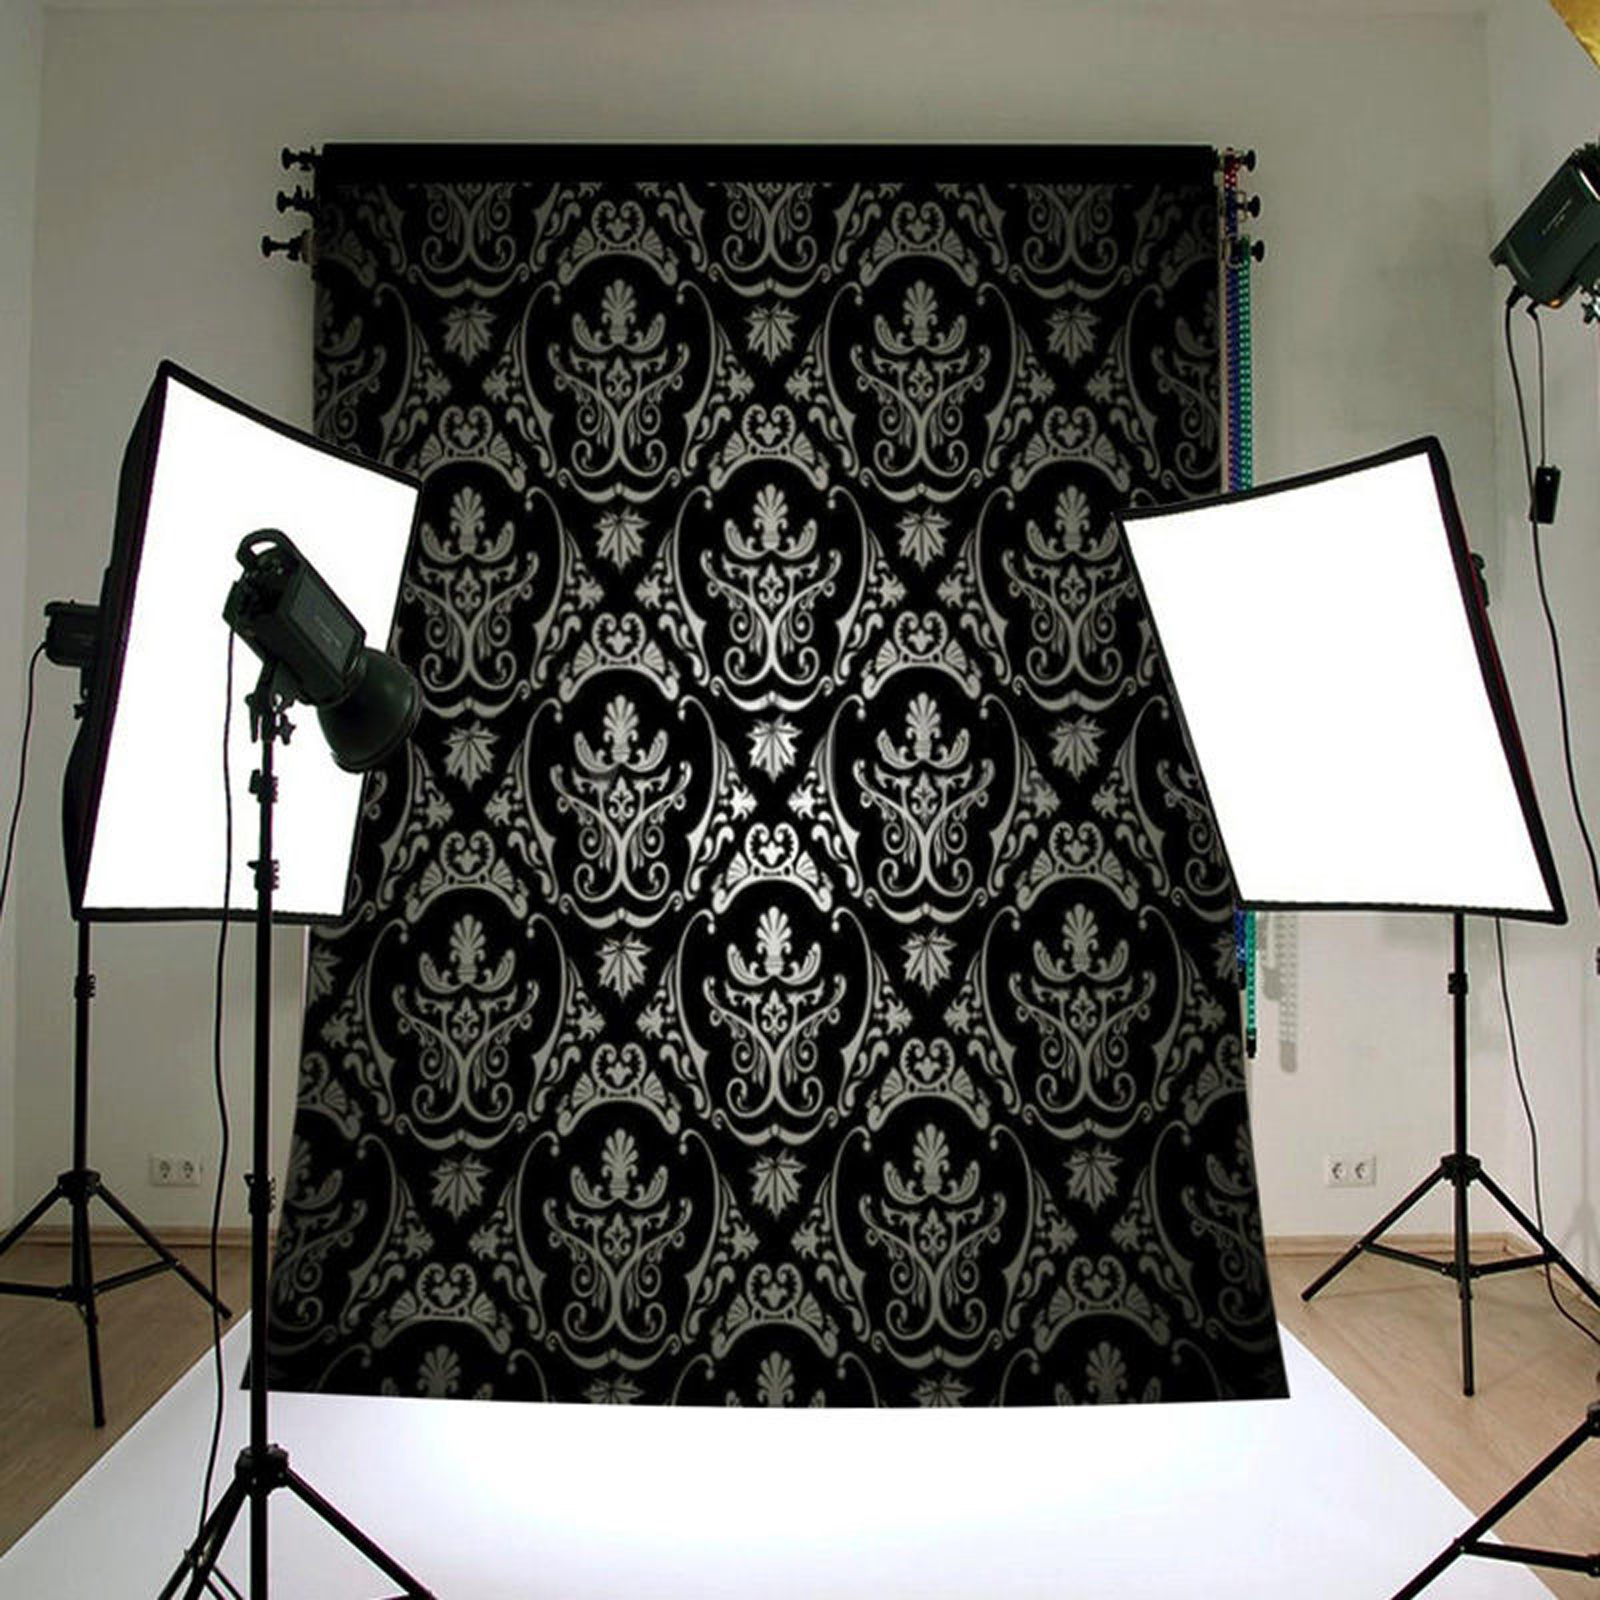 NK HOME Studio Photo Video Photography Backdrops Vinyl Fabric Christmas Holiday Party Decorations Background Screen Props 5x7ft 40+ Colors